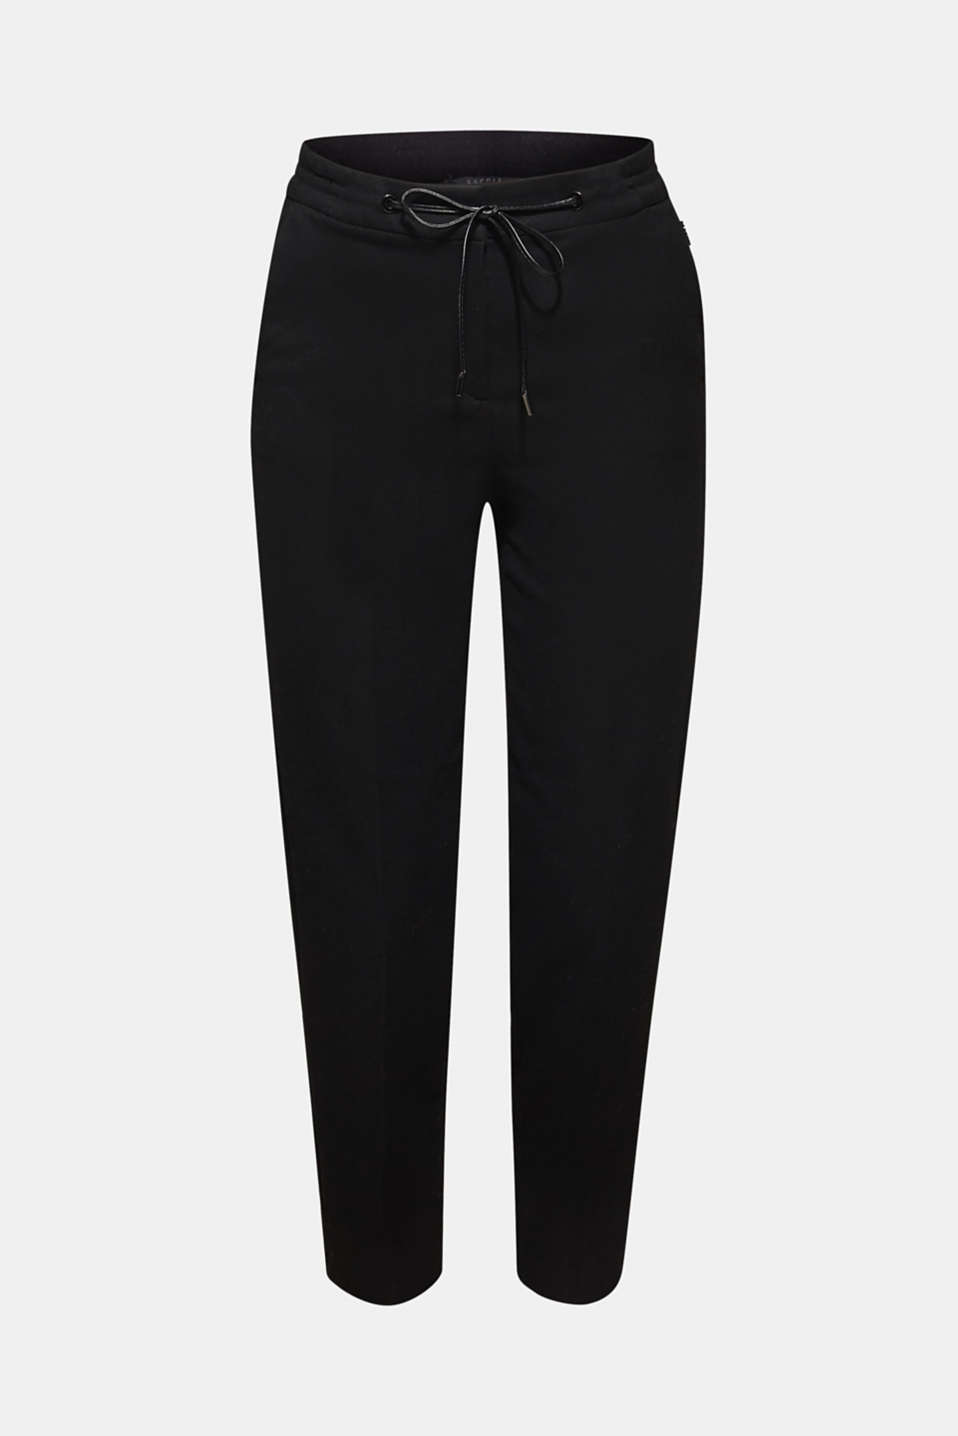 Flannel stretch trousers in a tracksuit bottom style, BLACK, detail image number 6